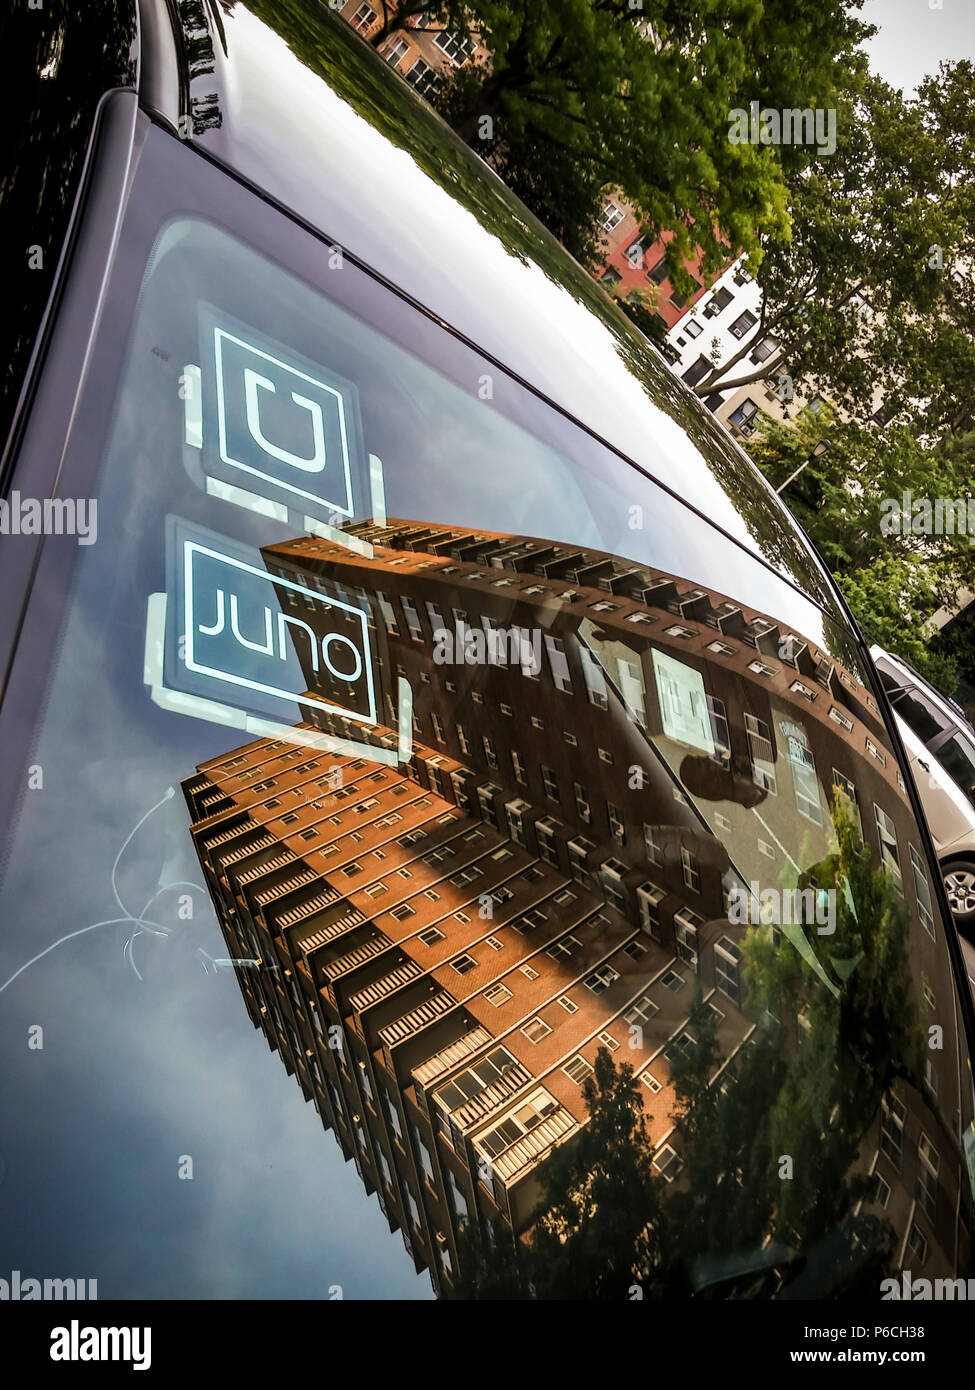 A livery with affiliation stickers for both competing Juno and Uber ride-sharing services in New York on Tuesday, June 26, 2018.(© Richard B. Levine) - Stock Image